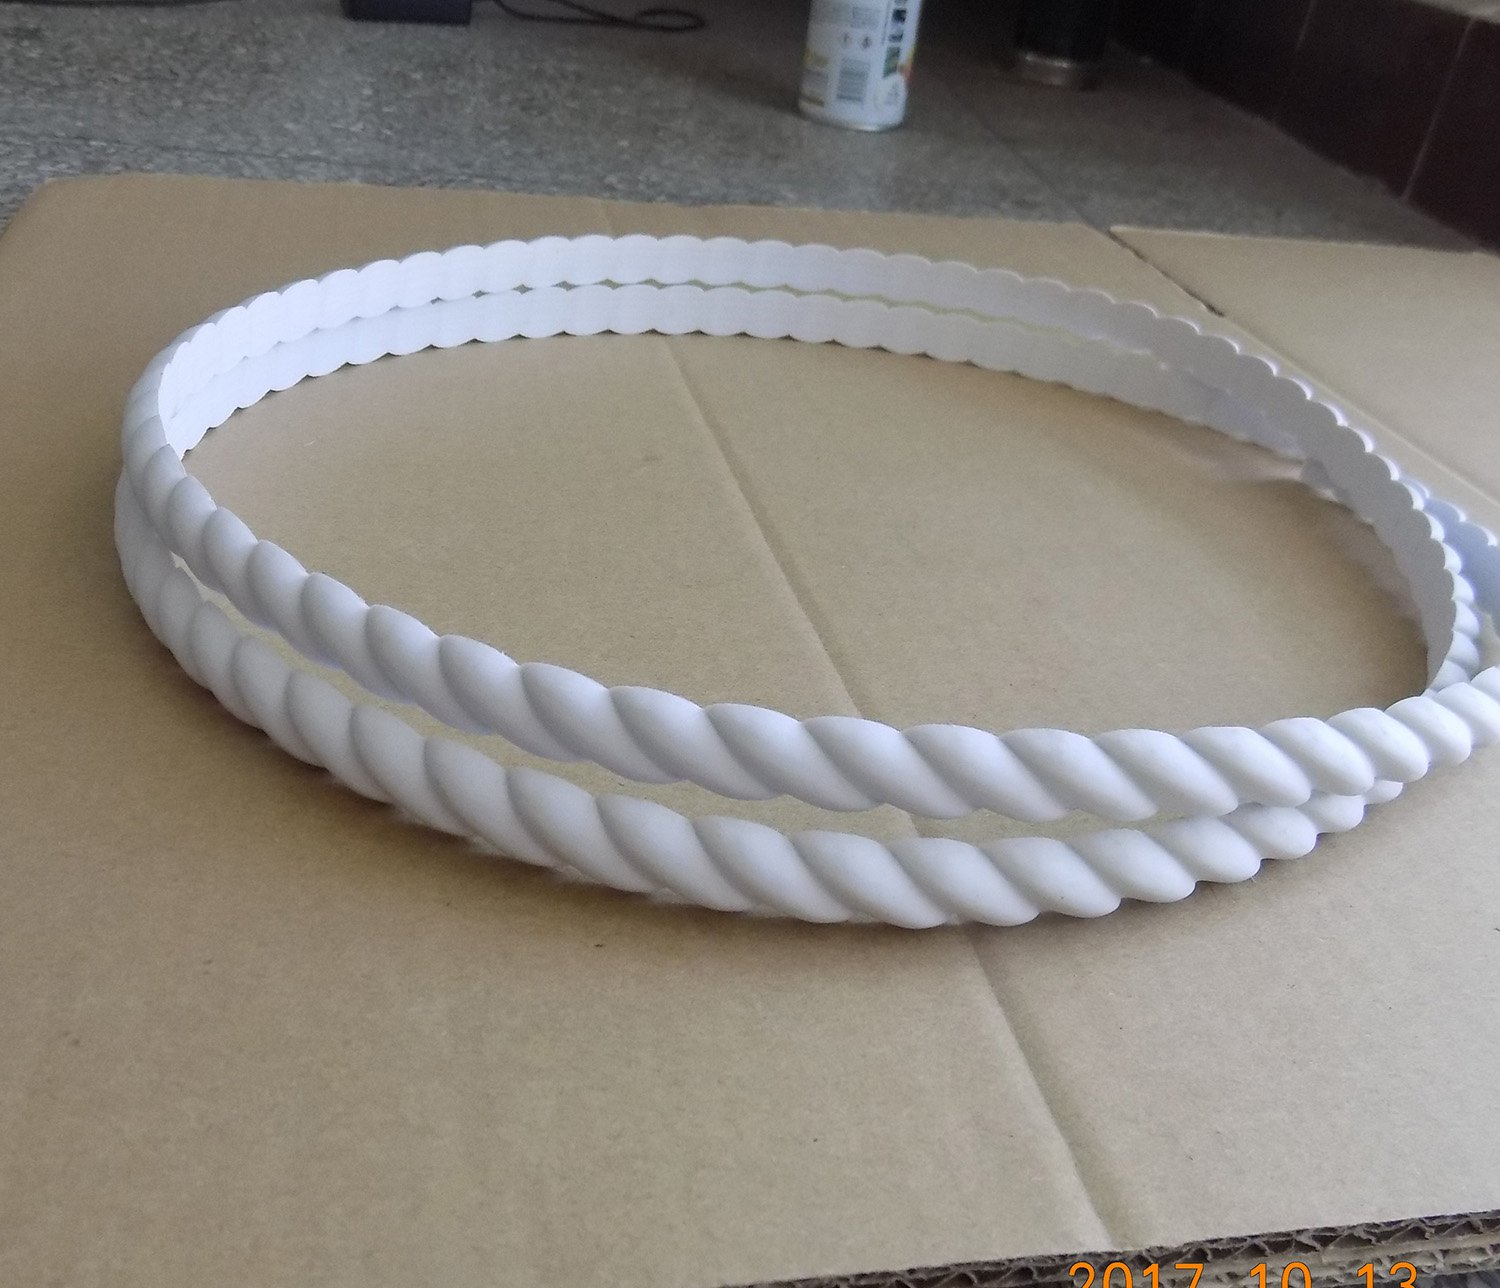 Flexible Moulding Rope Decorative Door Cabinets Wardrobes Drawers Furniture Molding Trim 1cm x 15 Foot (15')